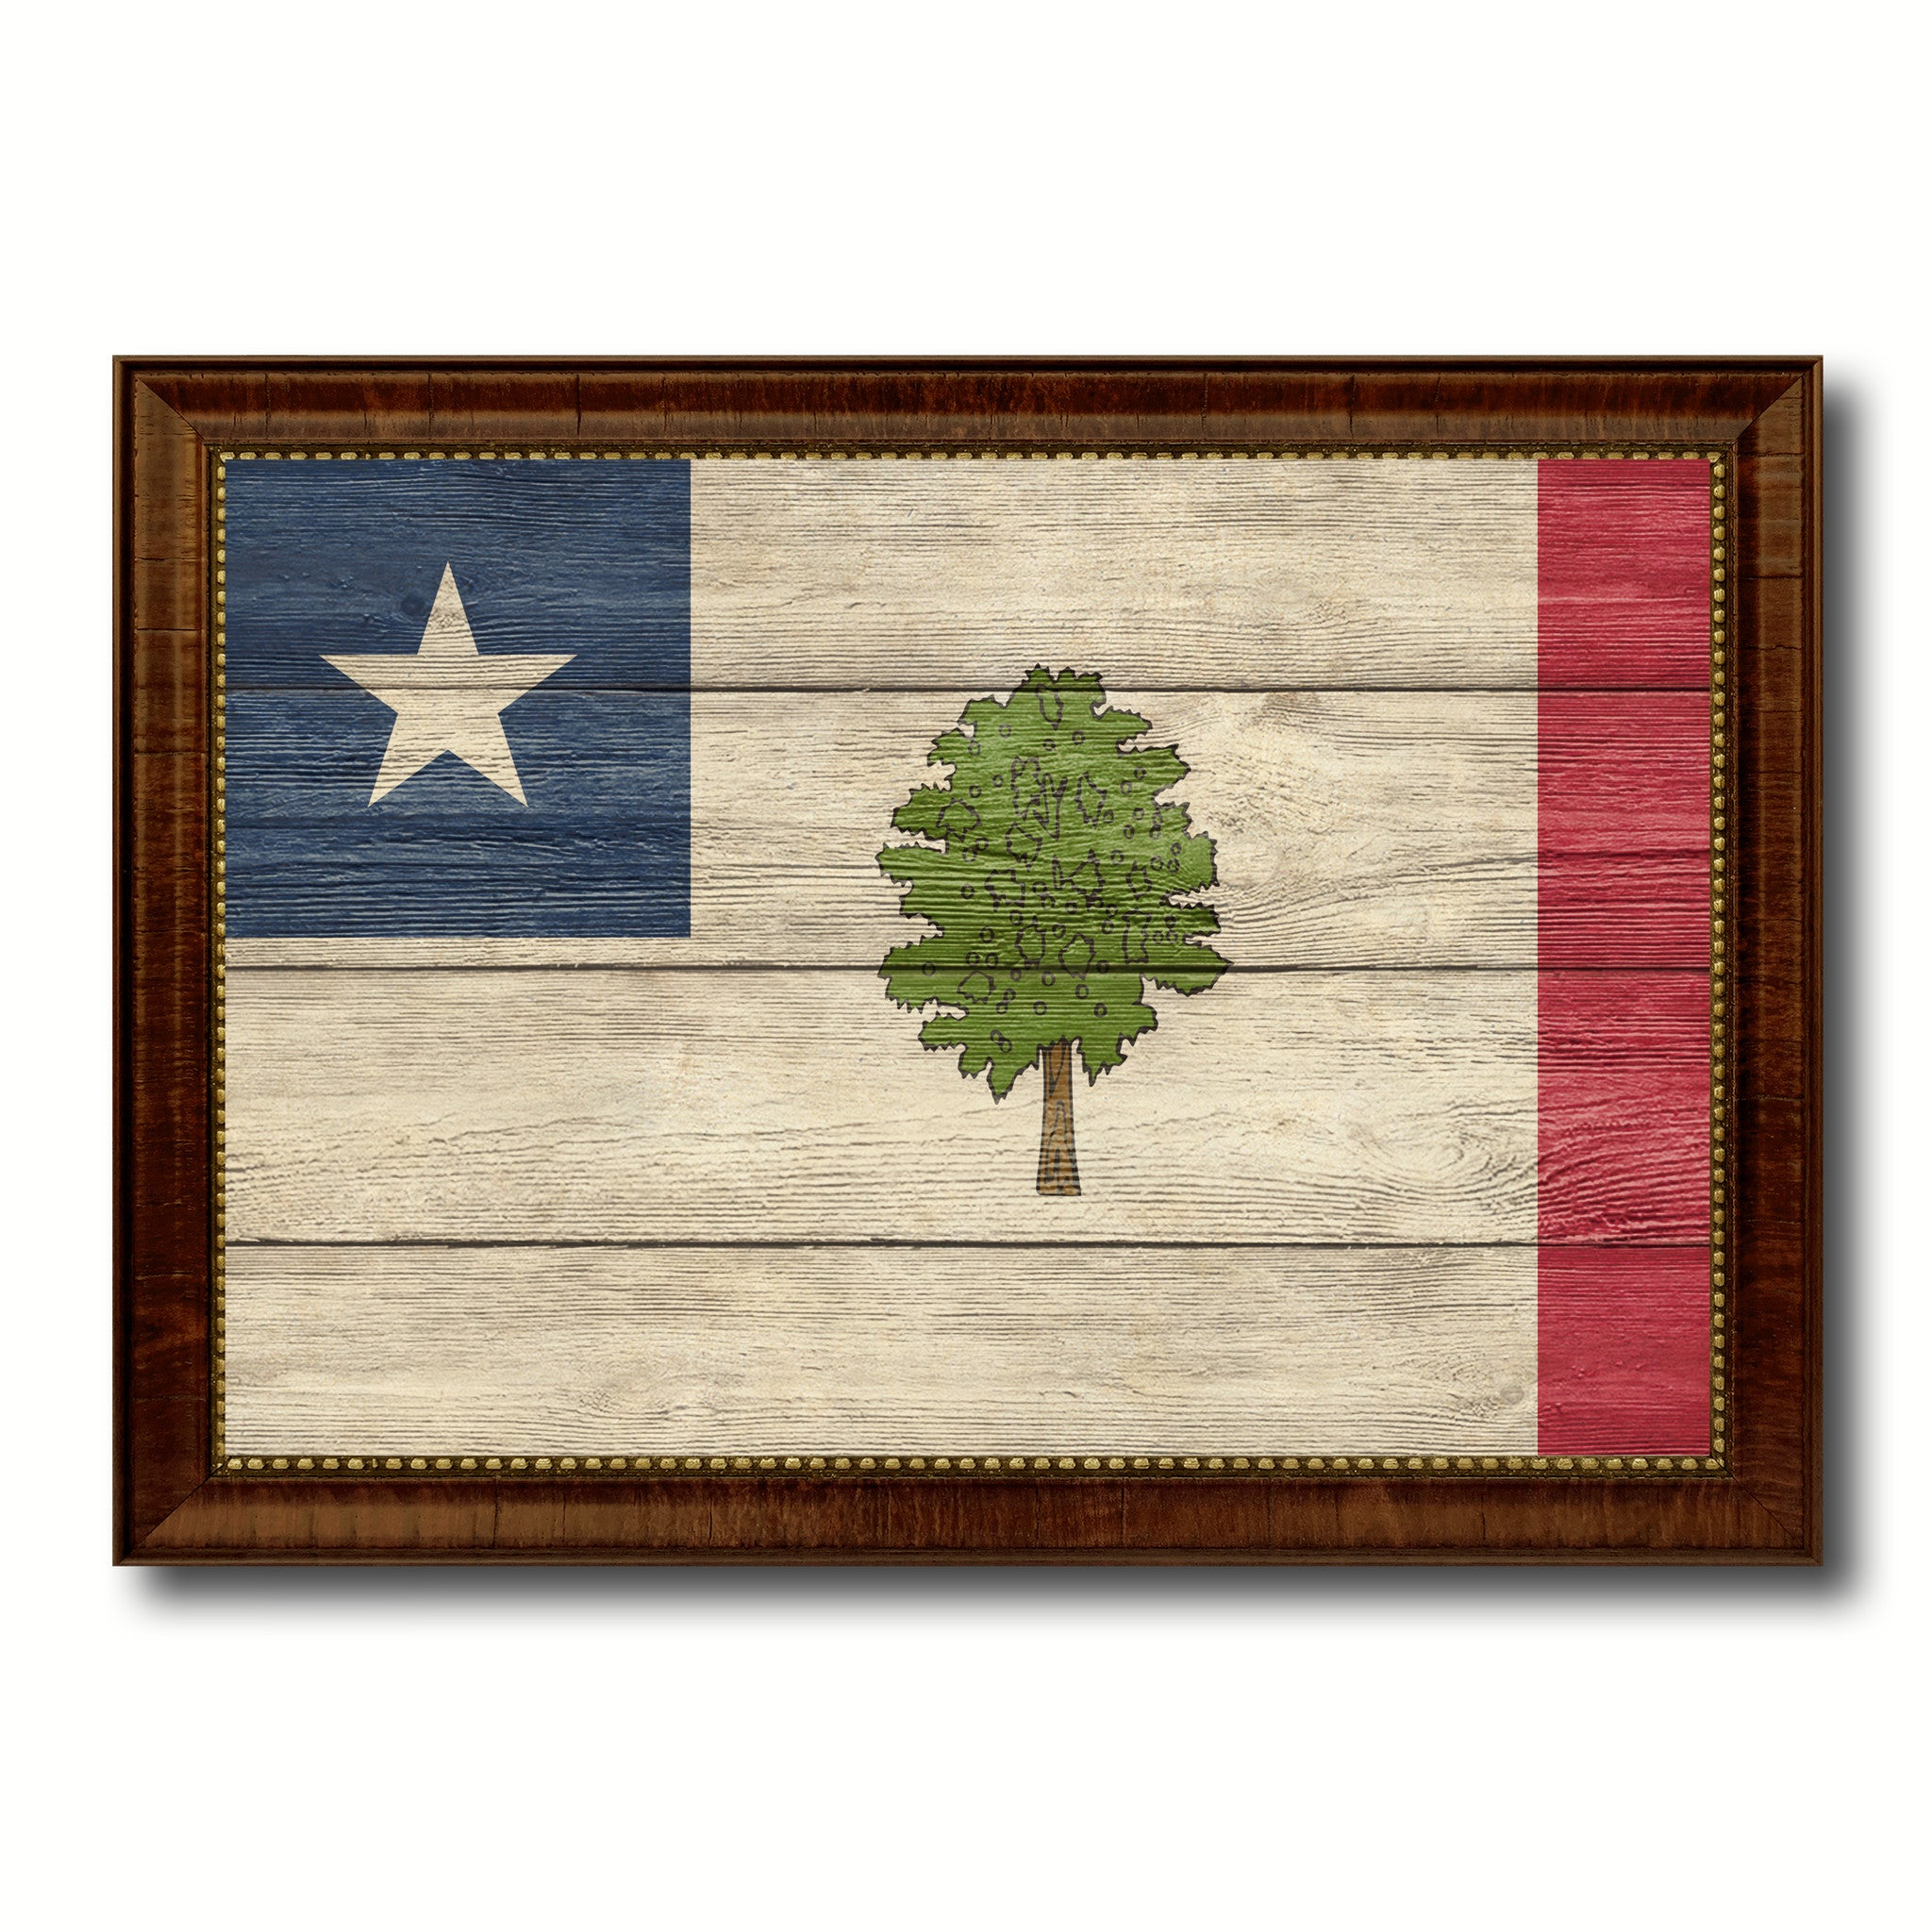 Magnolia City Mississippi State Texture Flag Canvas Print Brown Picture Frame